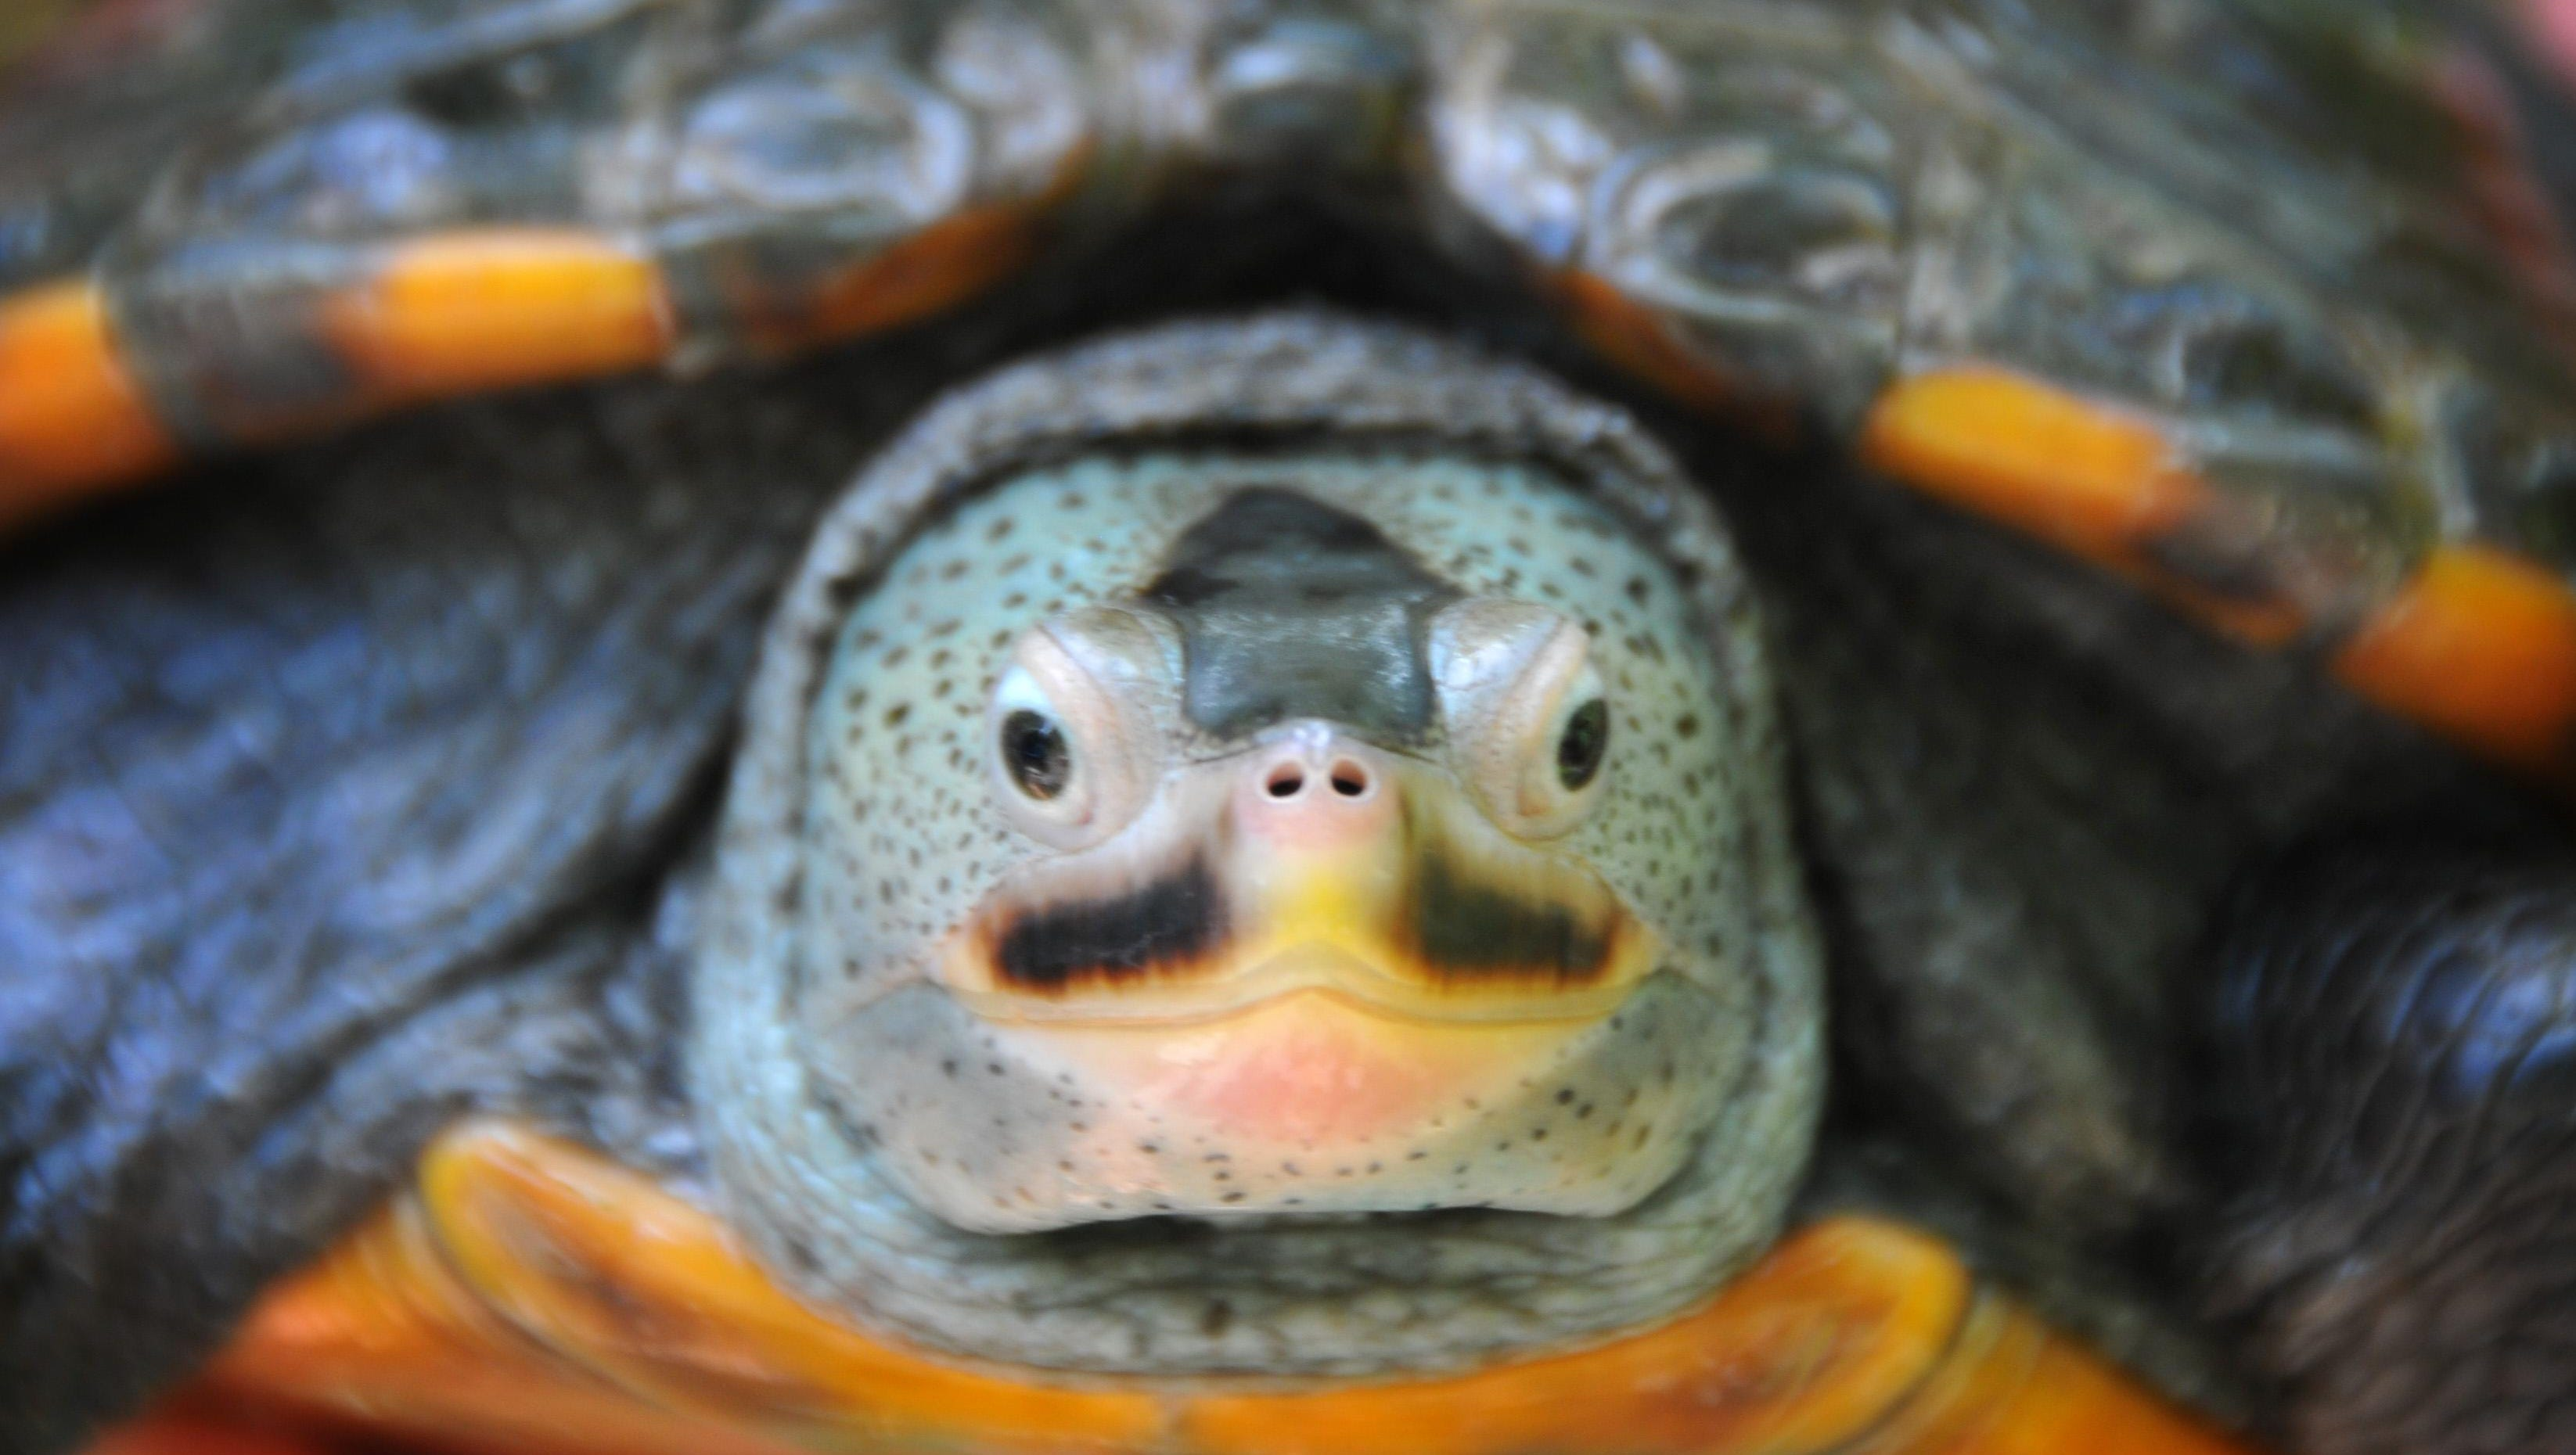 The Brevard Zoo is collaborating with Florida Tech in research on the Florida East Coast Diamondback Terrapin, a turtle acclimated to the Indian River Lagoon. This adult female named Tortuga seems to be sporting a mustache.